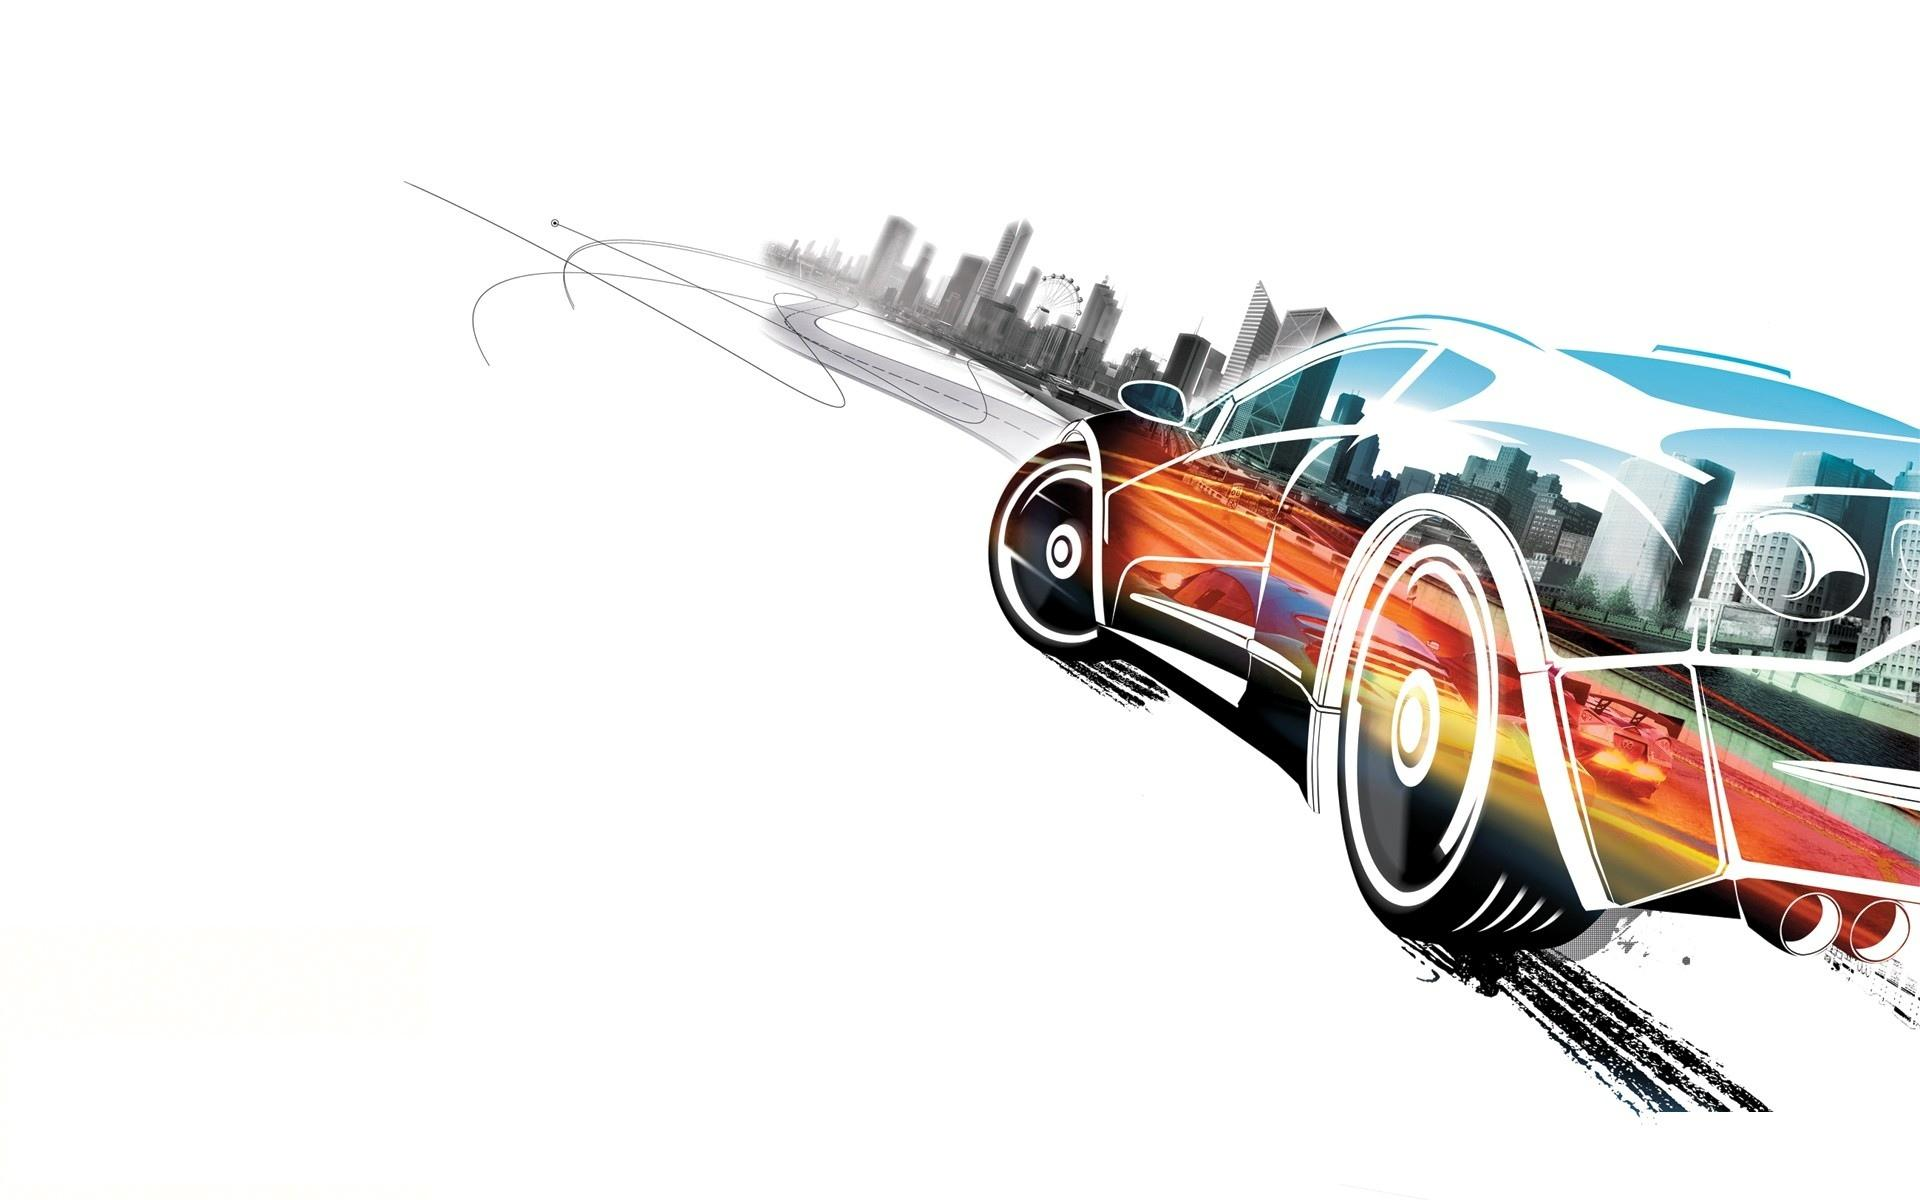 Car Artistic wallpapers HD quality